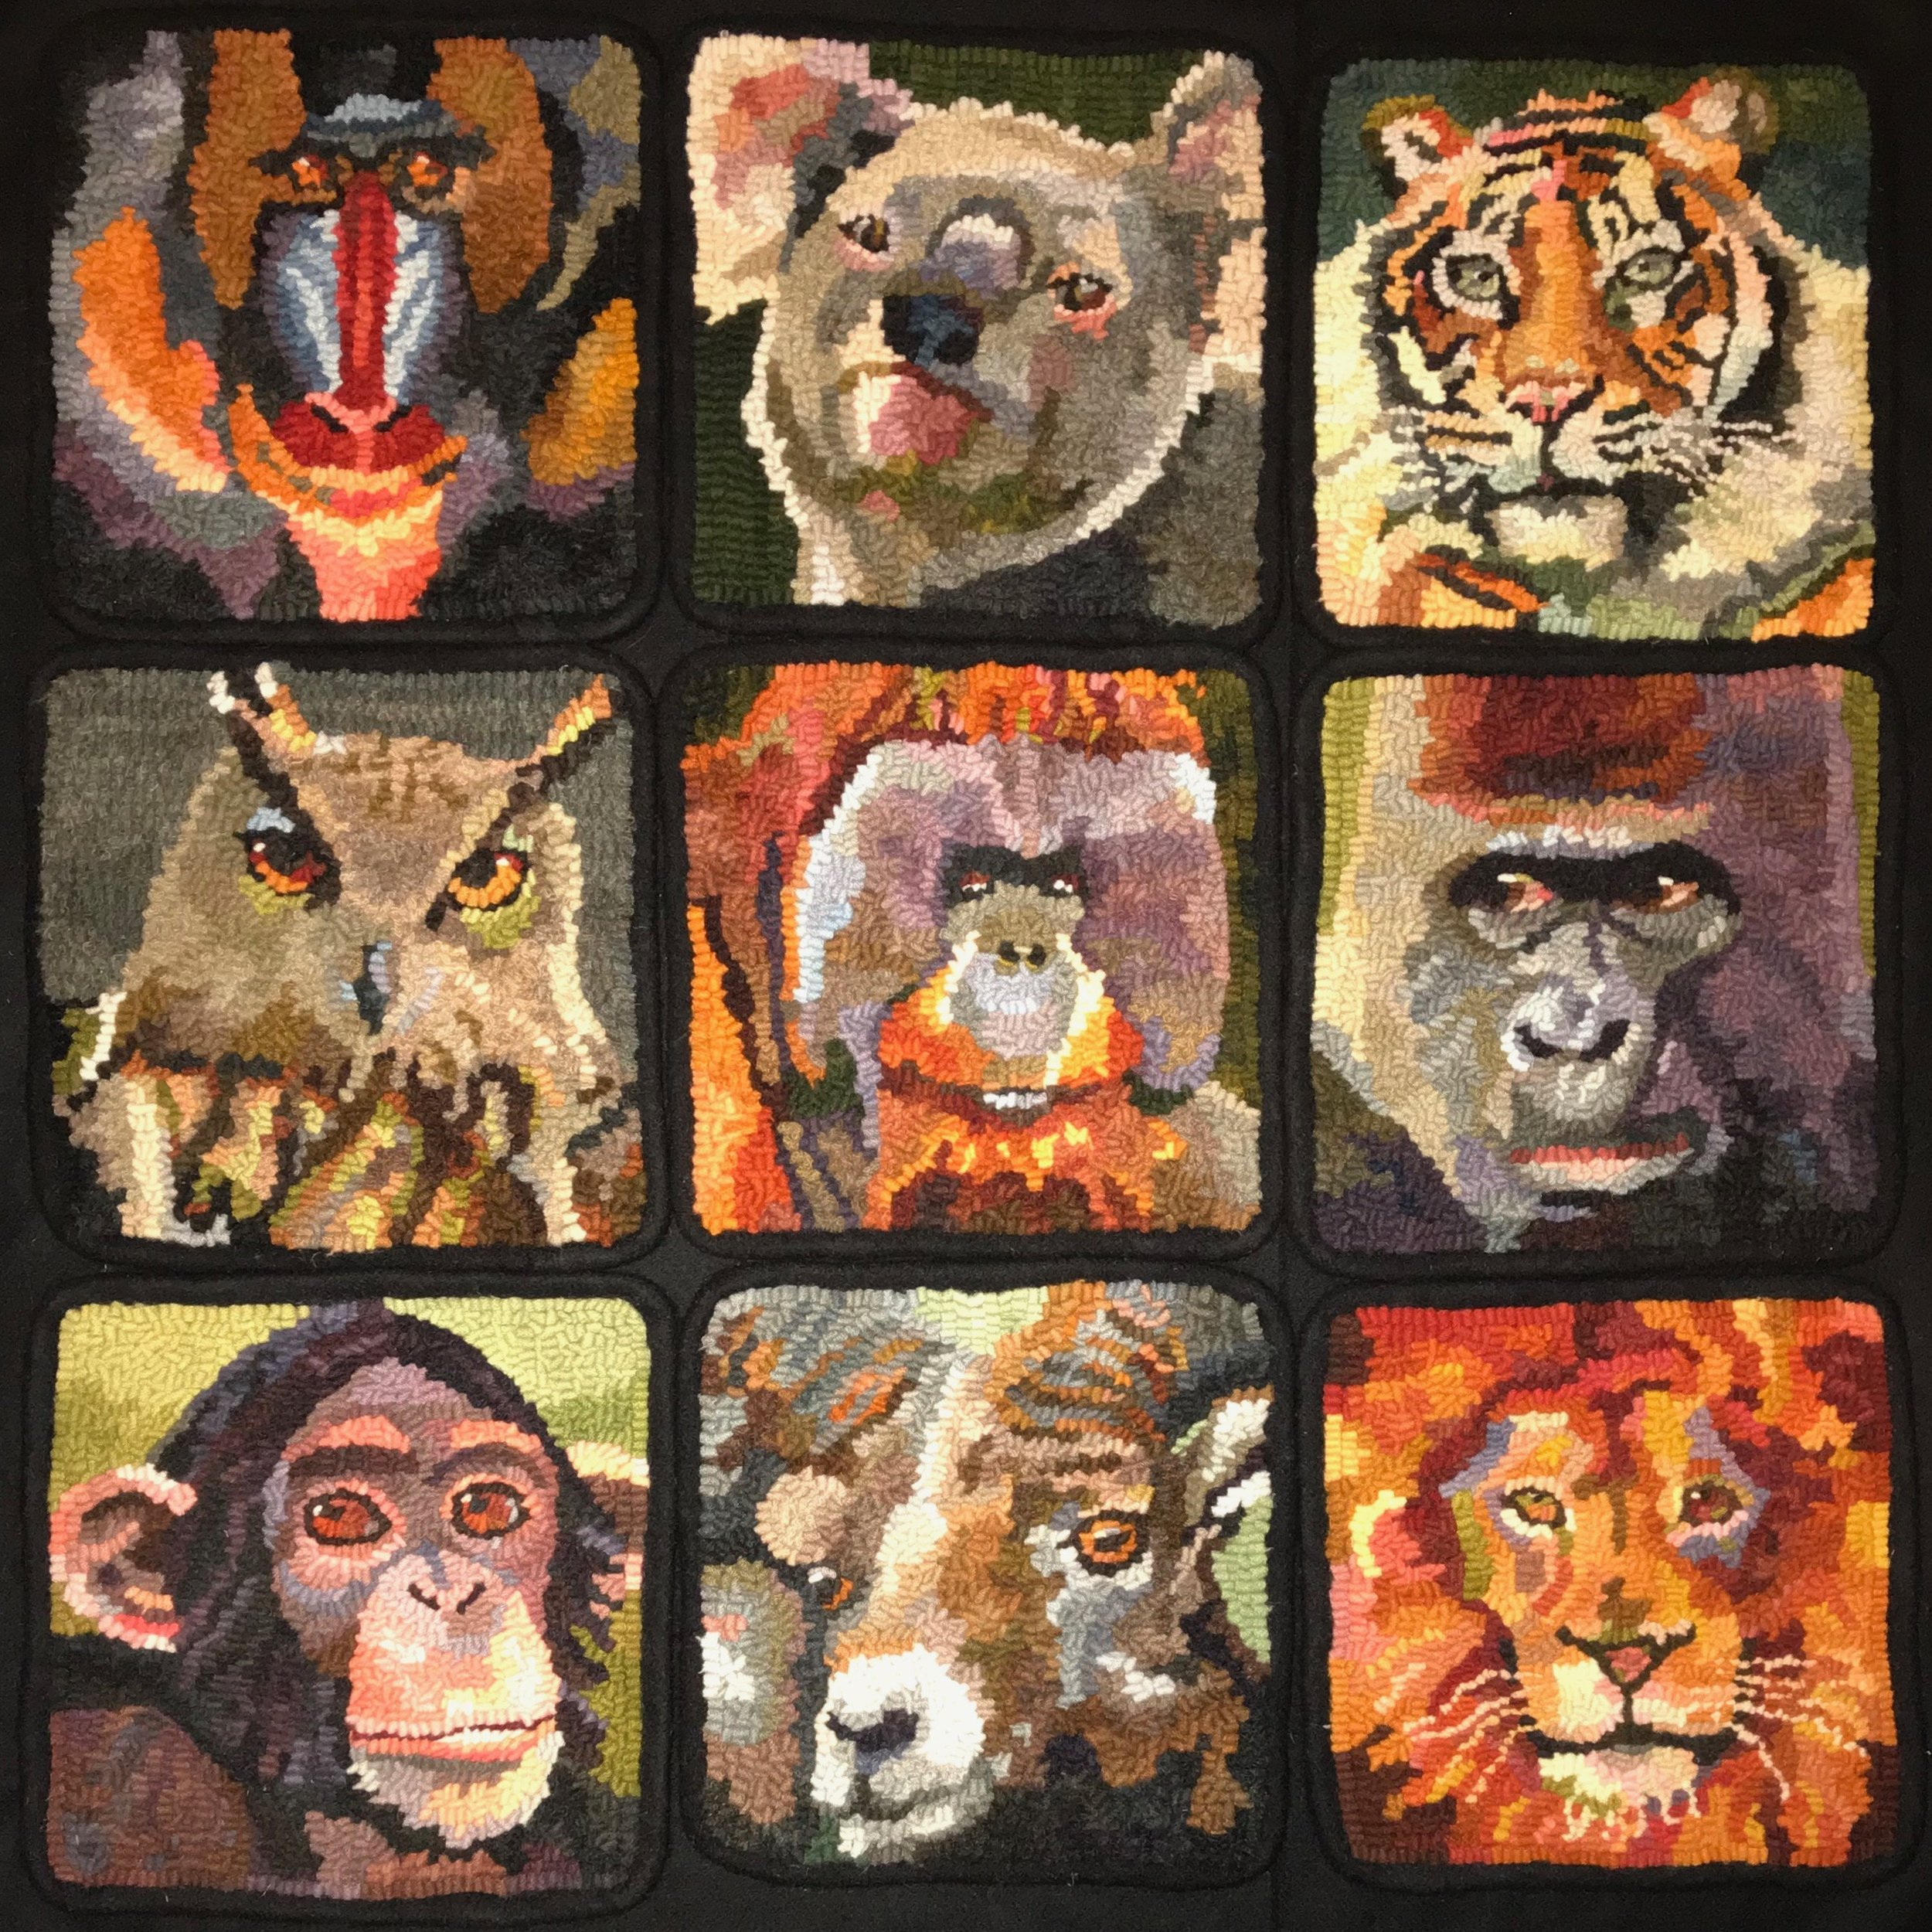 "ORIGINAL NINE ZOO ZONE SERIES 2018-19.  7"" X 7"" HOOKED MATS ON LINEN FOUNDATION.  DESIGNED, DYED, AND HOOKED BY APRIL D. DECONICK"